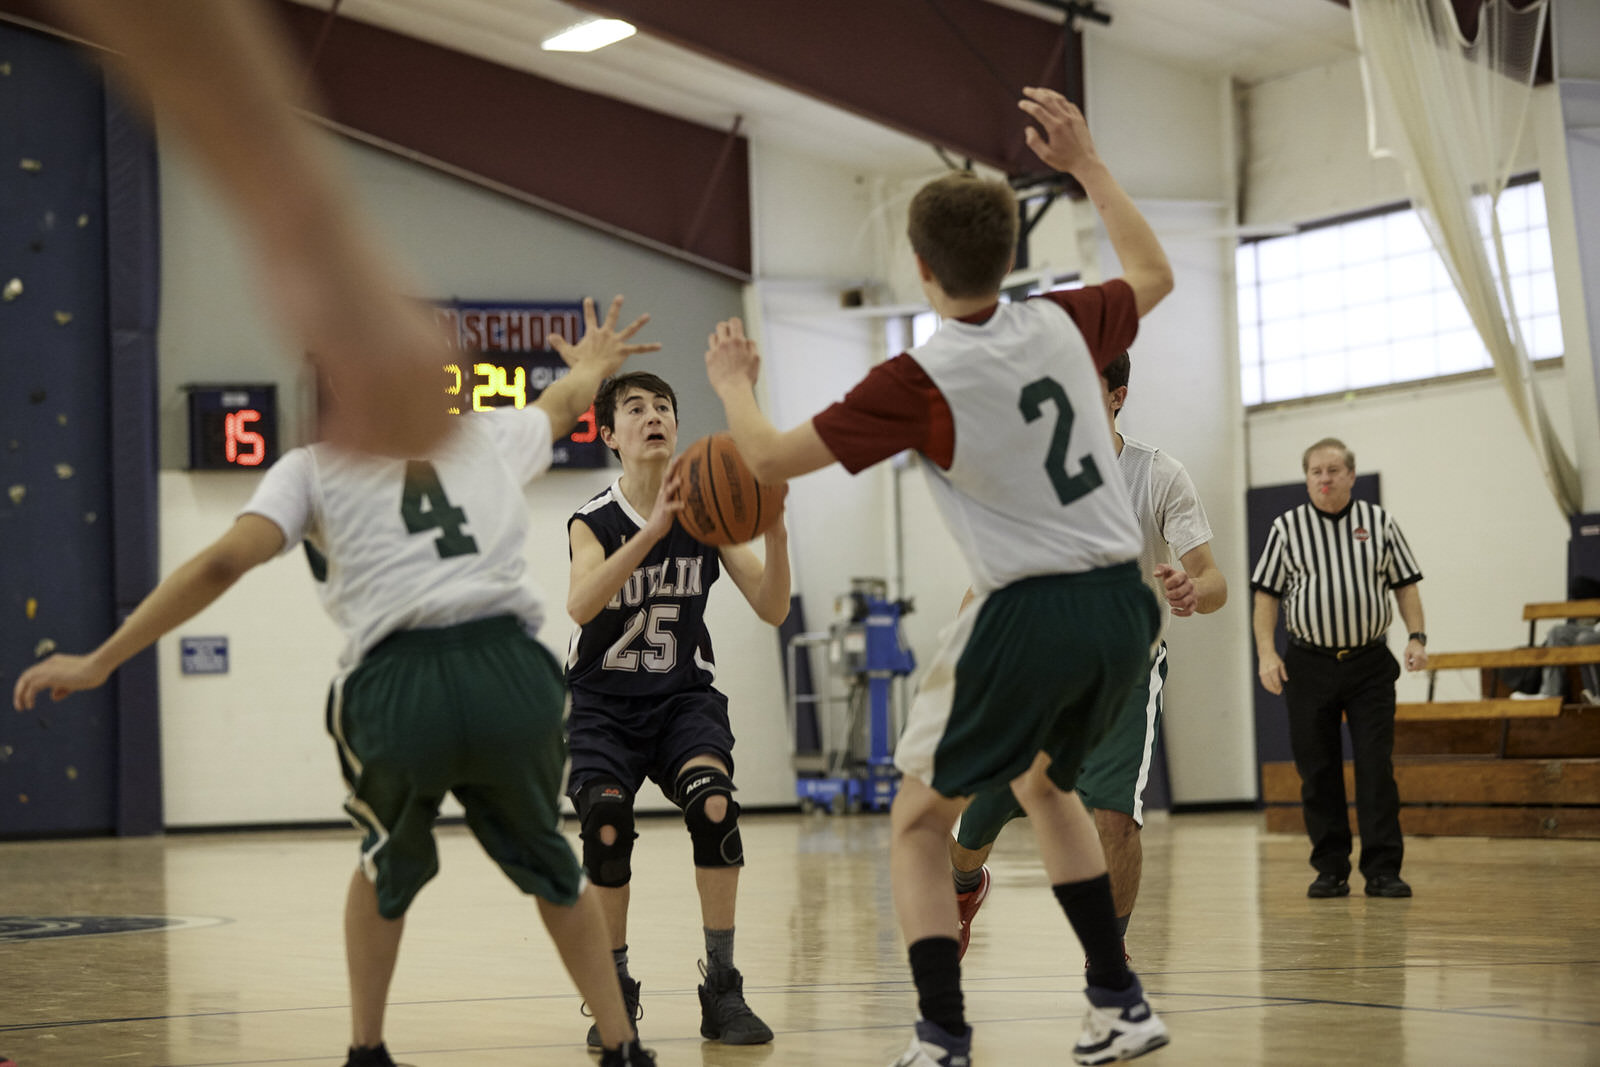 Dublin JV Boys Basketball vs High Mowing School - Jan 26 2019 - 0134.jpg